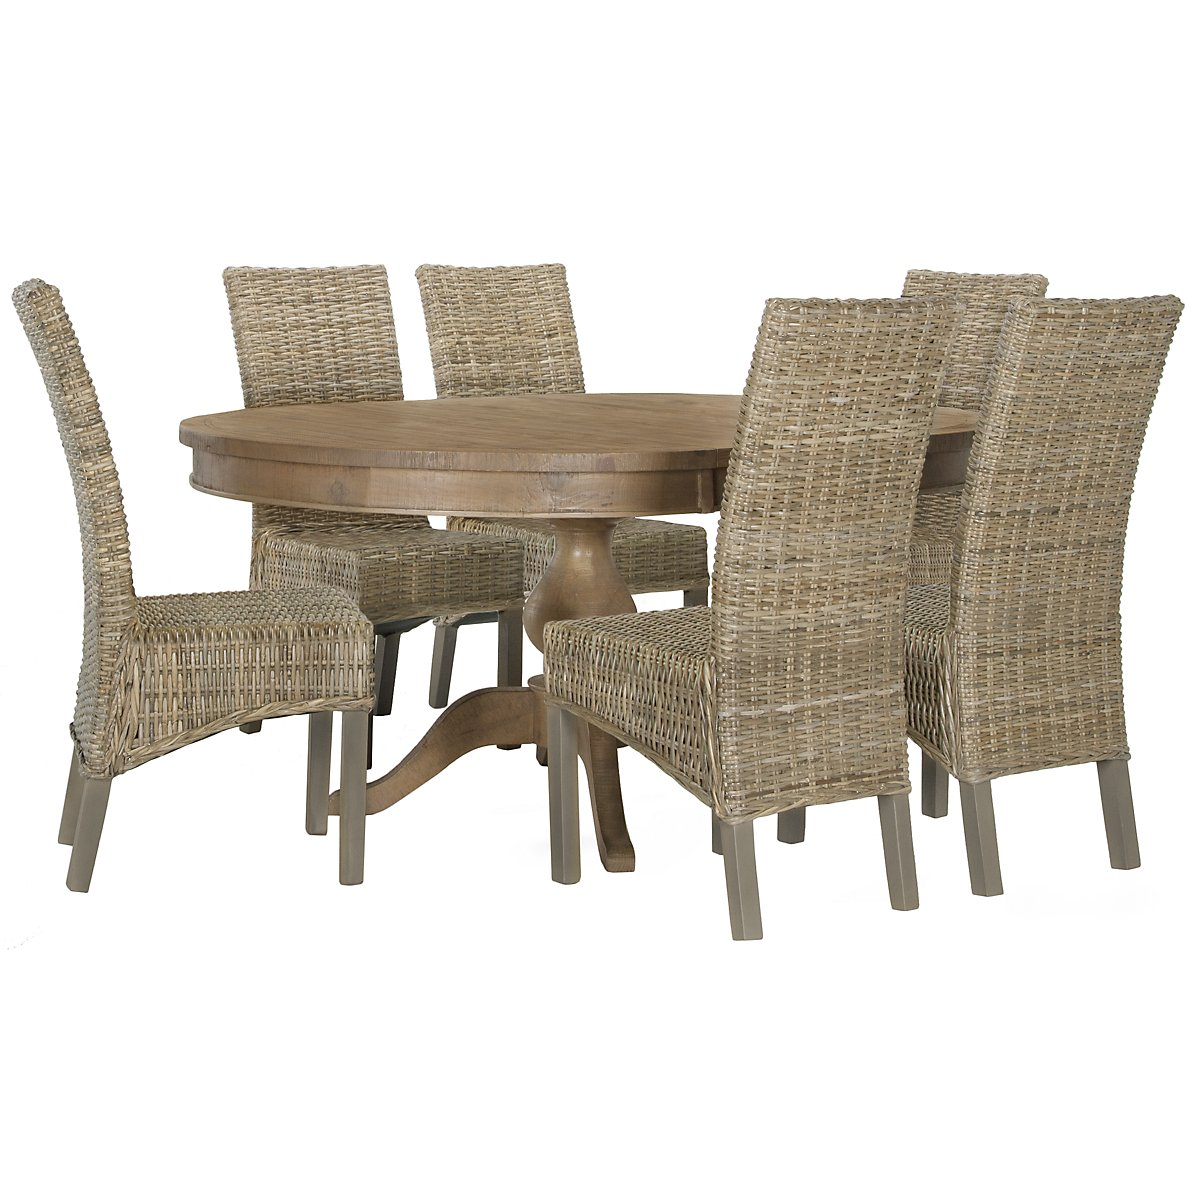 Wooden chairs with armrest - Jaden Light Tone Round Table 4 Woven Chairs